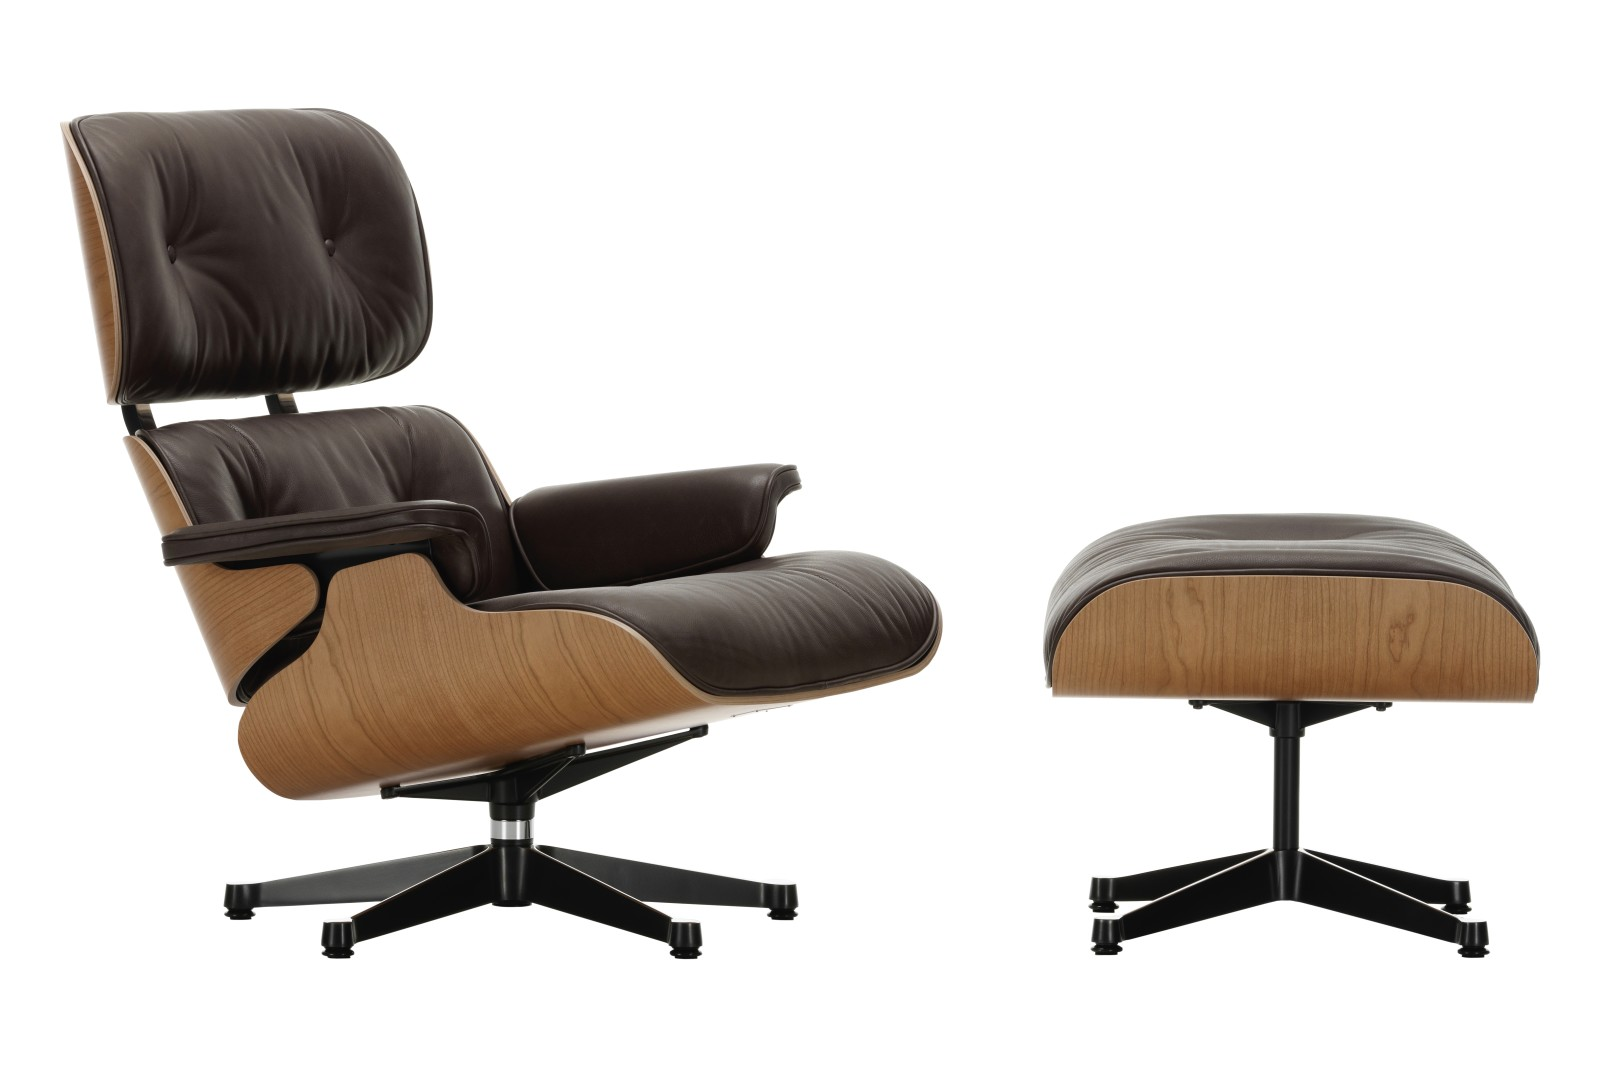 Vitra Eames Lounge Chair & Ottoman - American Cherry Shell Leather Premium 68 chocolate, 03/12 Alumi